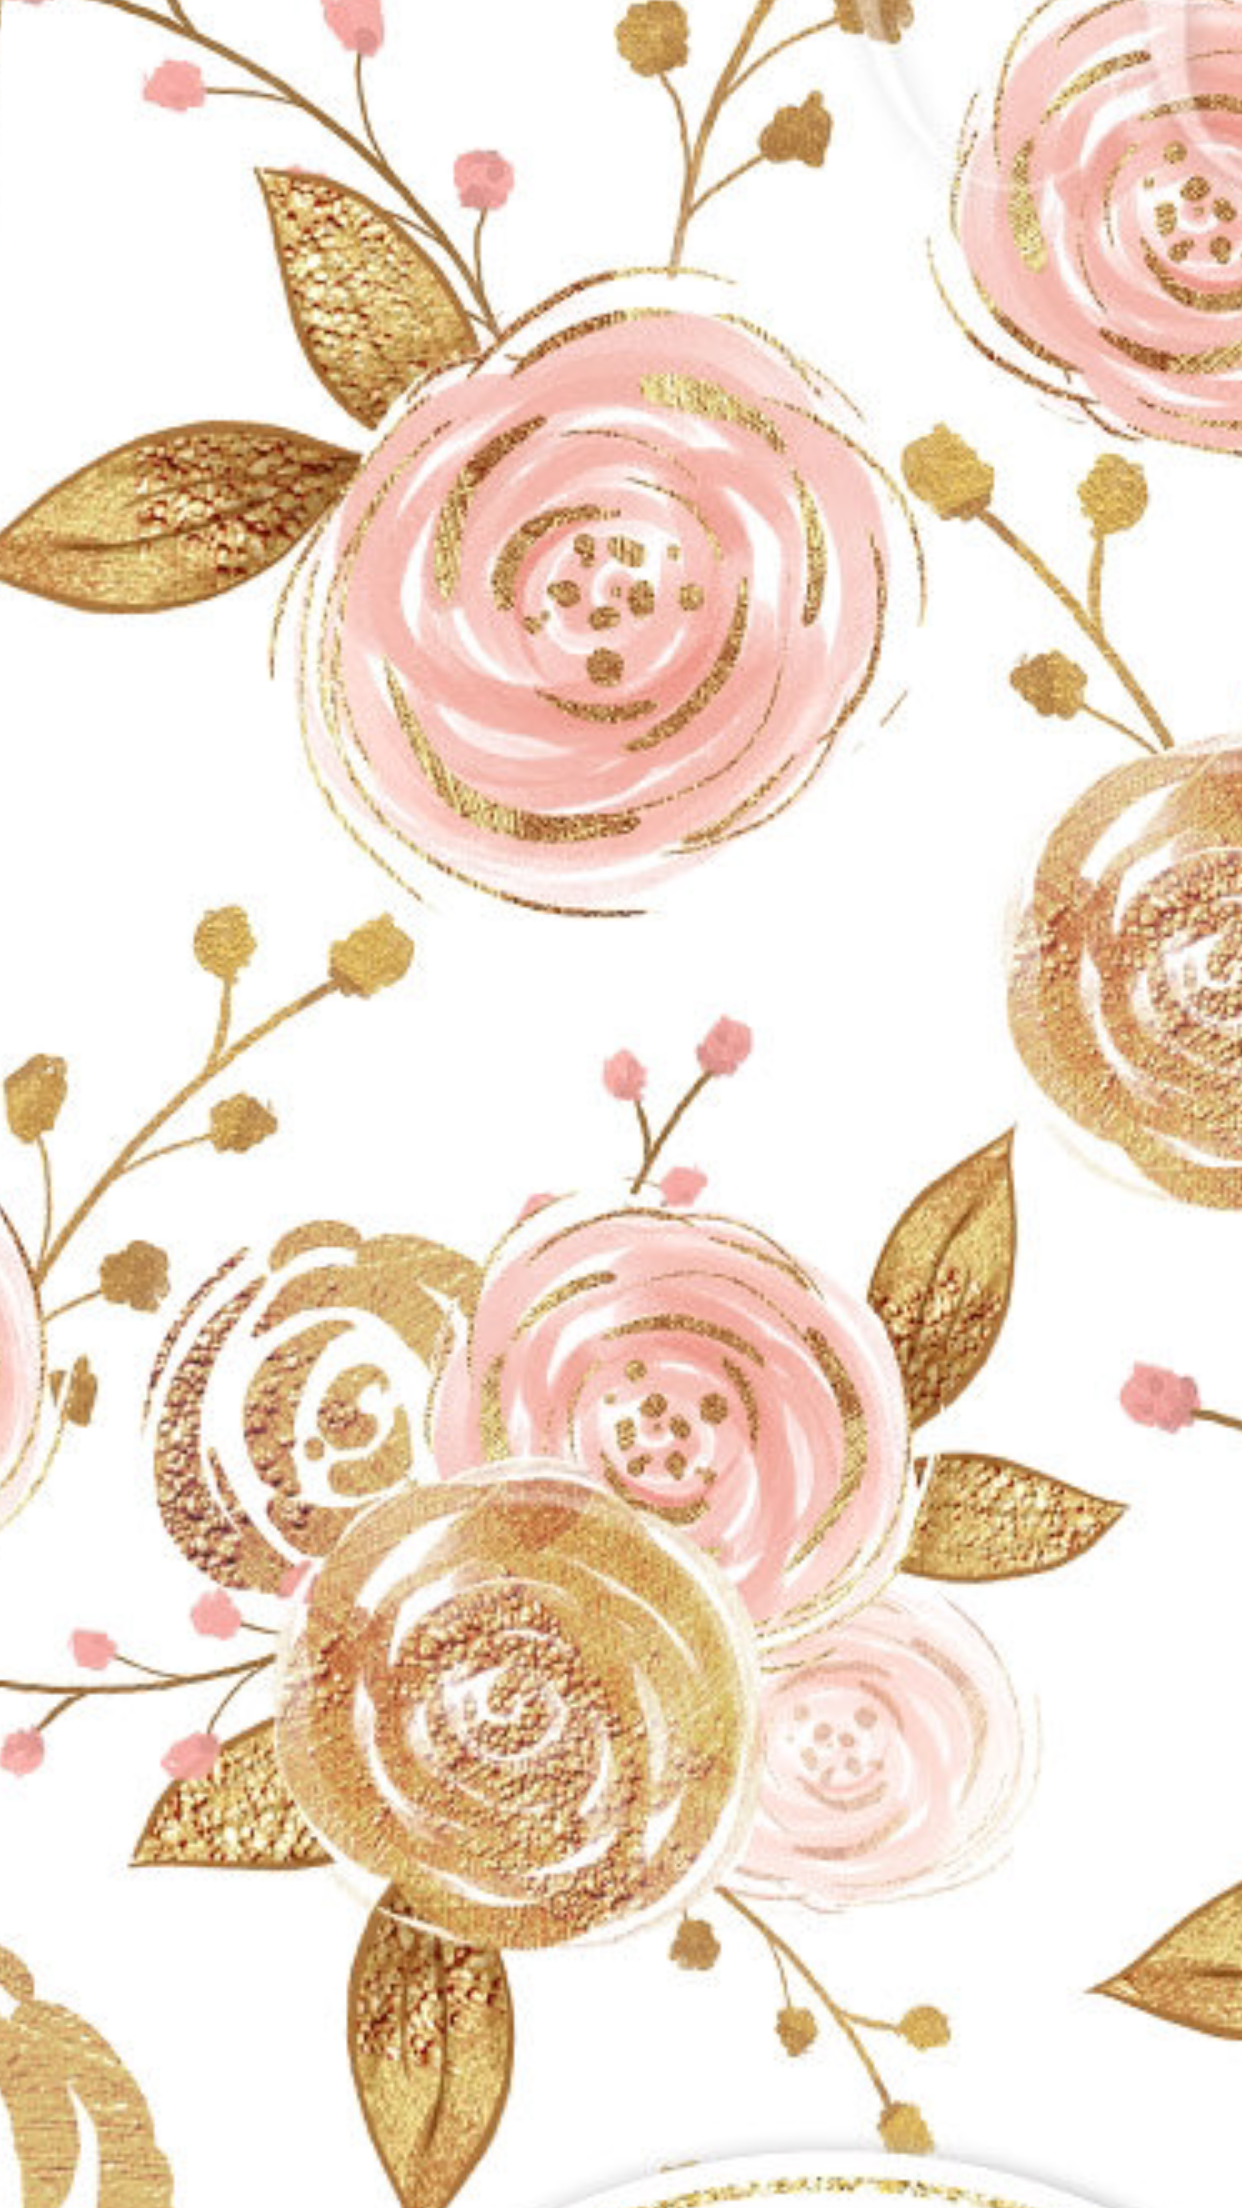 Pin by 𝓟𝓻𝓲𝓷𝓬𝓮𝓼𝓼 on Wallpapers Flower wallpaper, Iphone